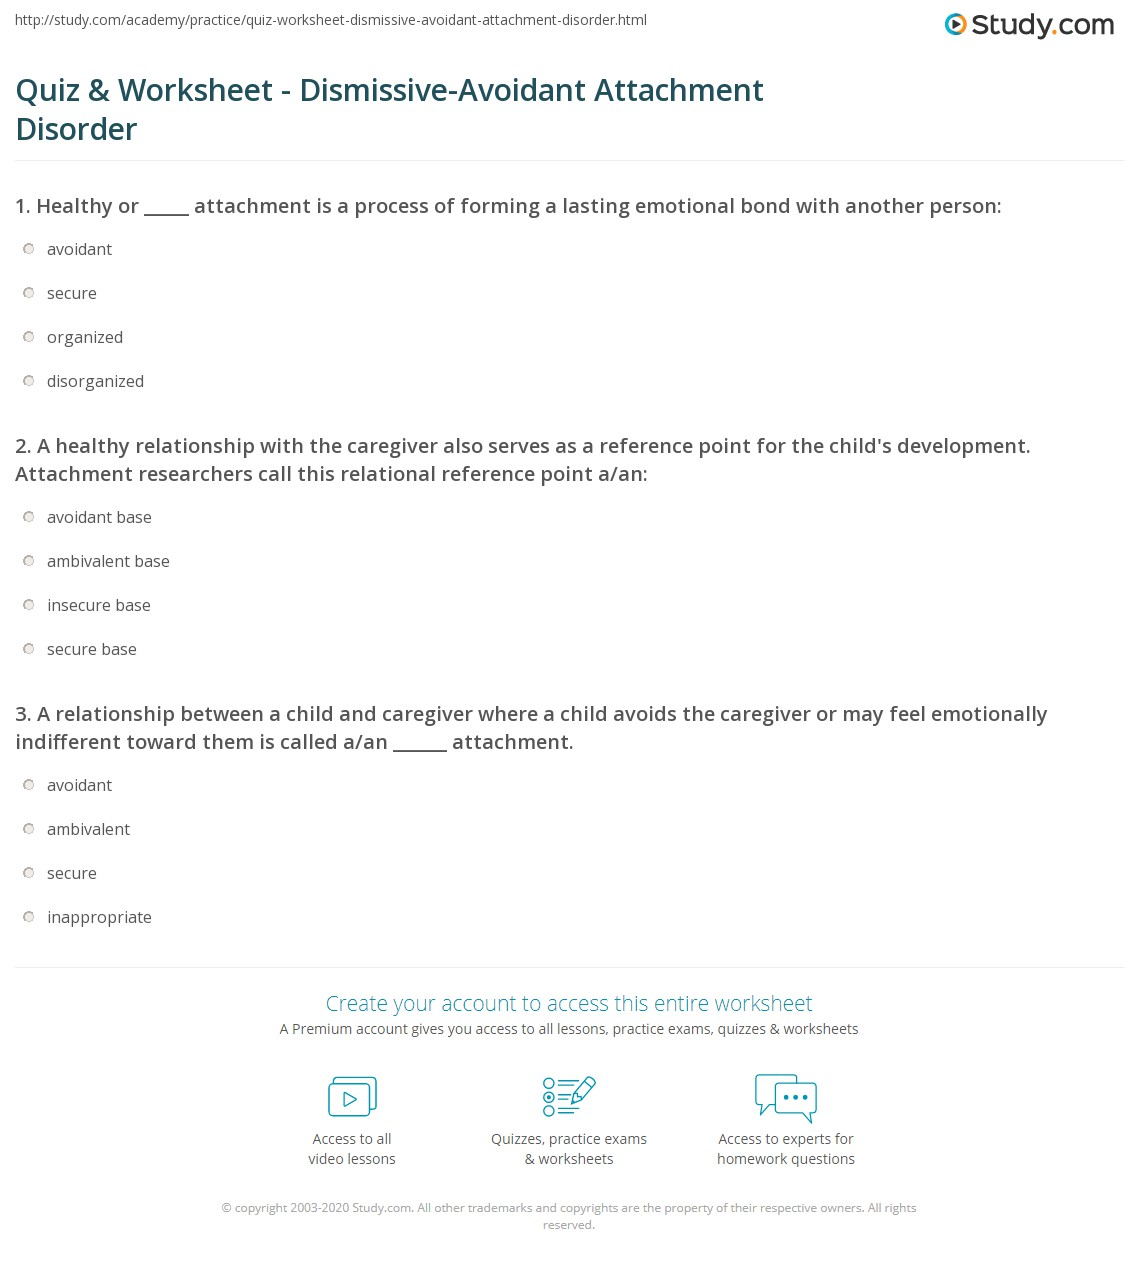 Printables Healthy Relationships Worksheet quiz worksheet dismissive avoidant attachment disorder study com a healthy relationship with the caregiver also serves as reference point for childs development resear